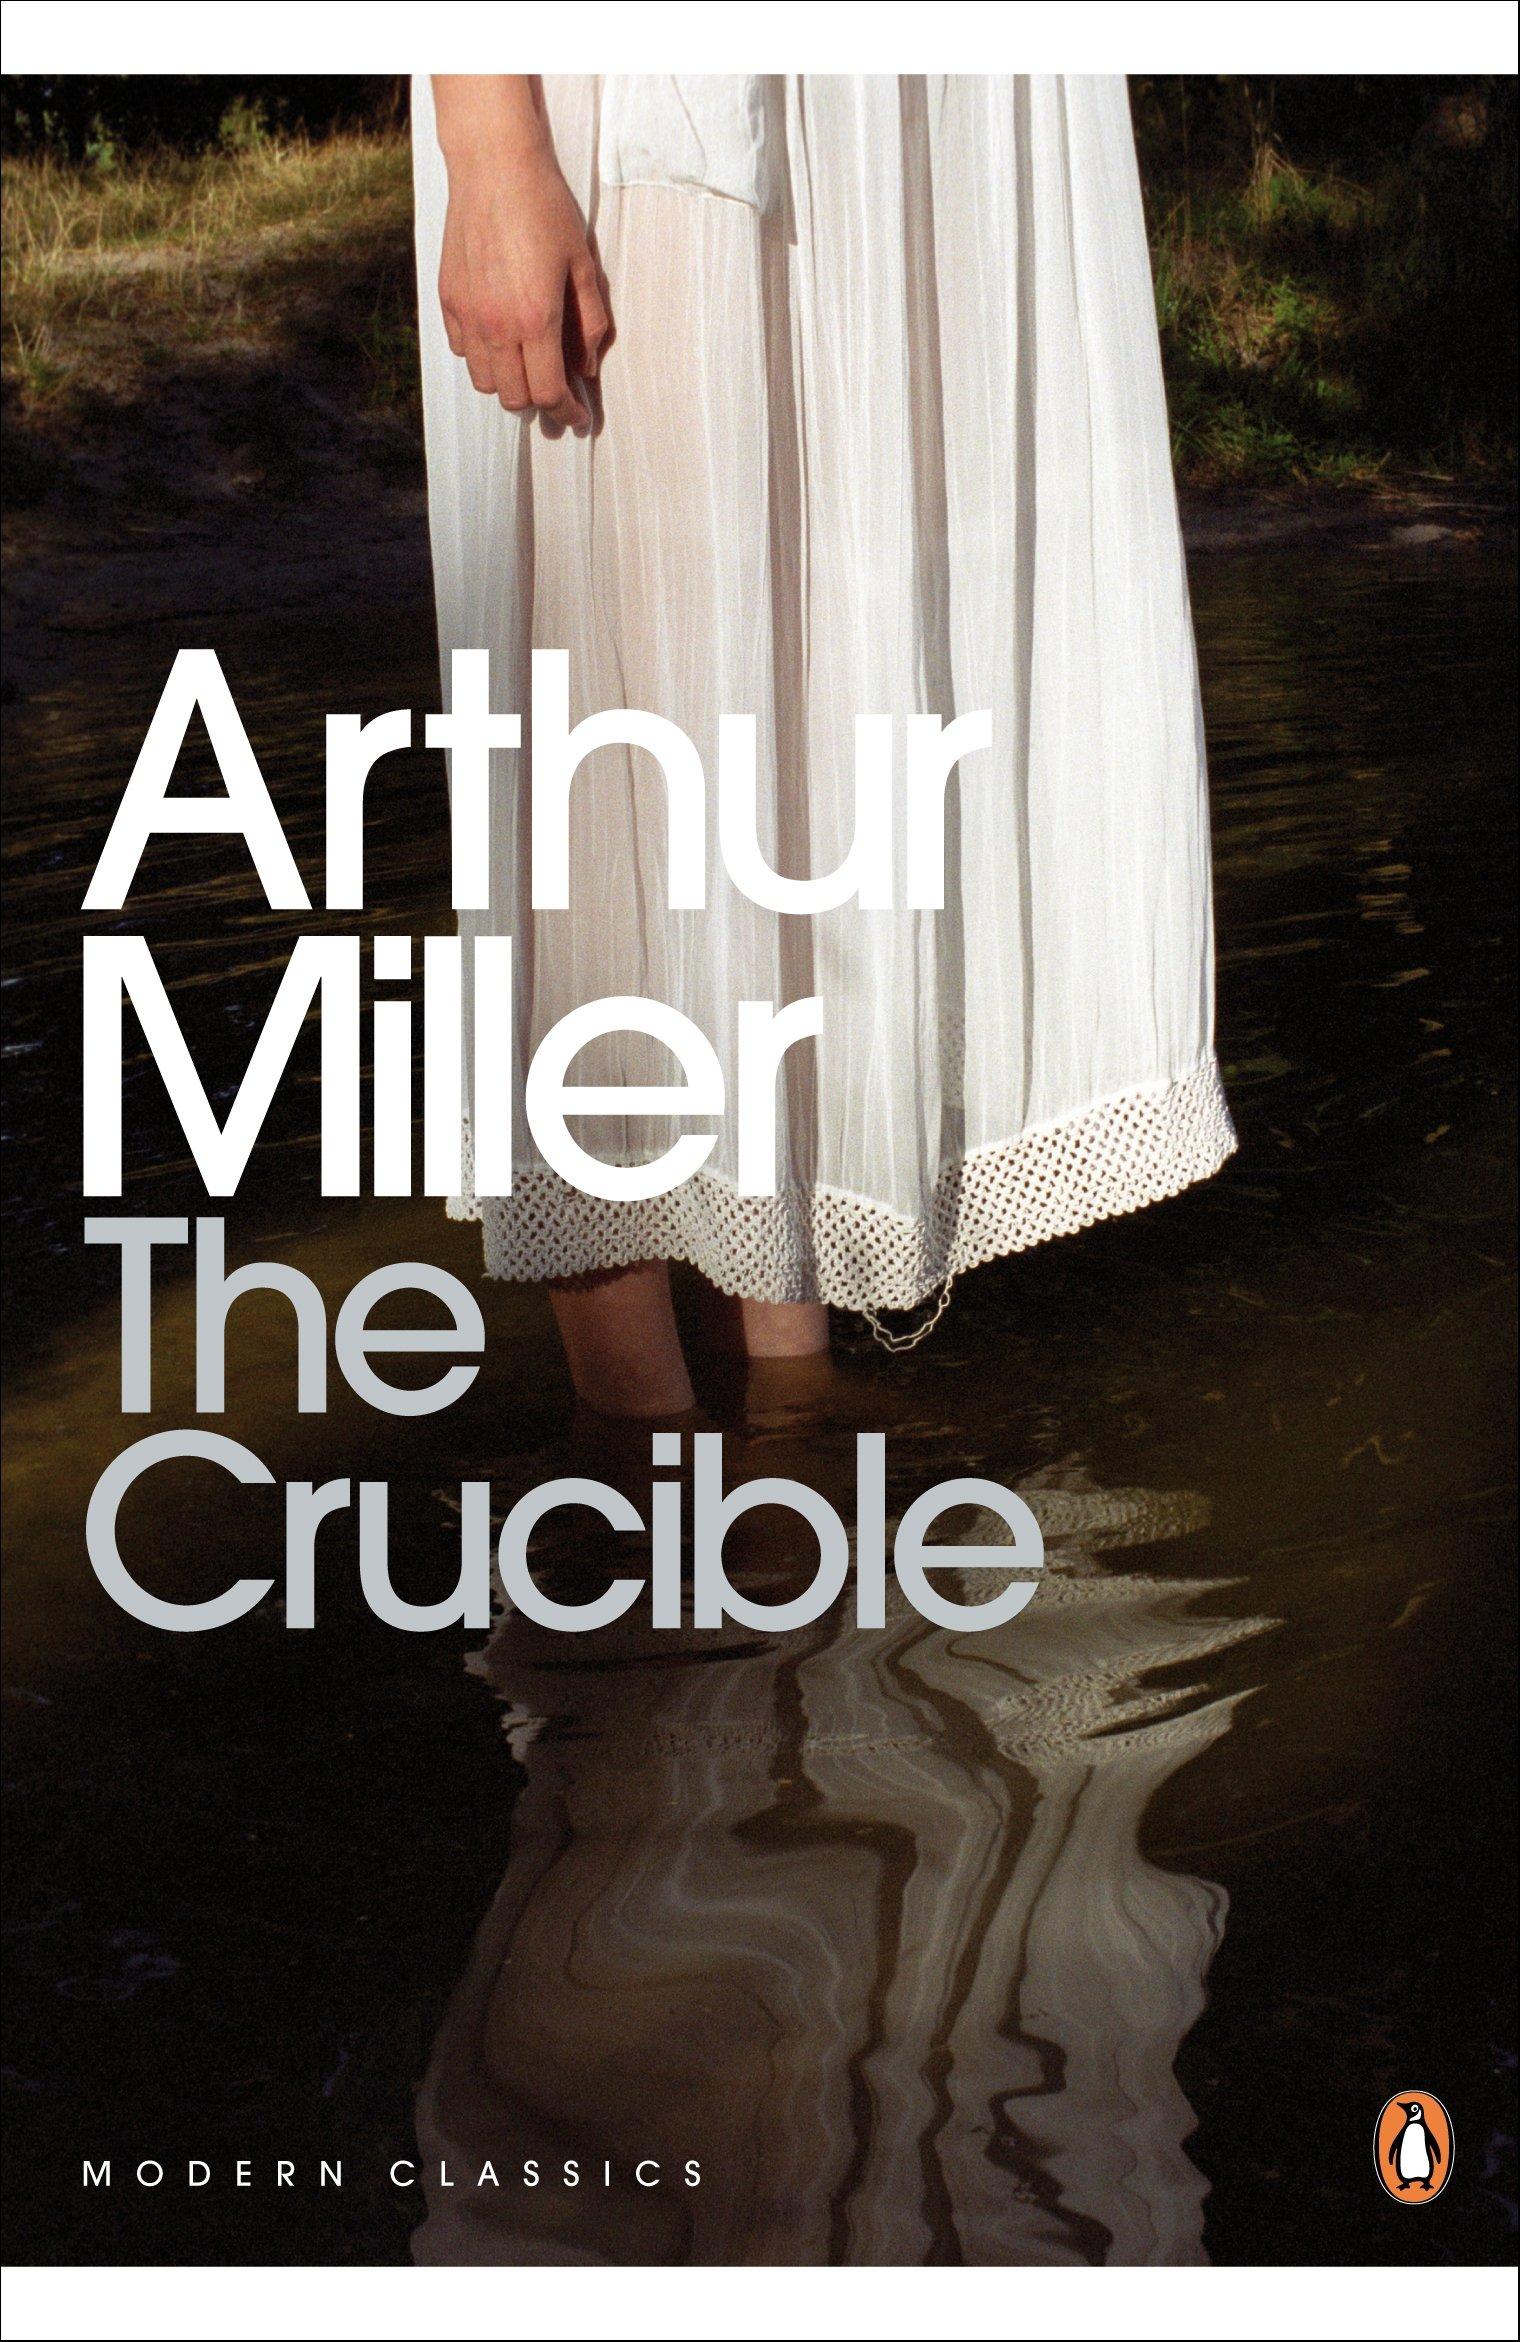 the crucible a play in four acts penguin modern classics the crucible a play in four acts penguin modern classics co uk arthur miller 8601300112046 books